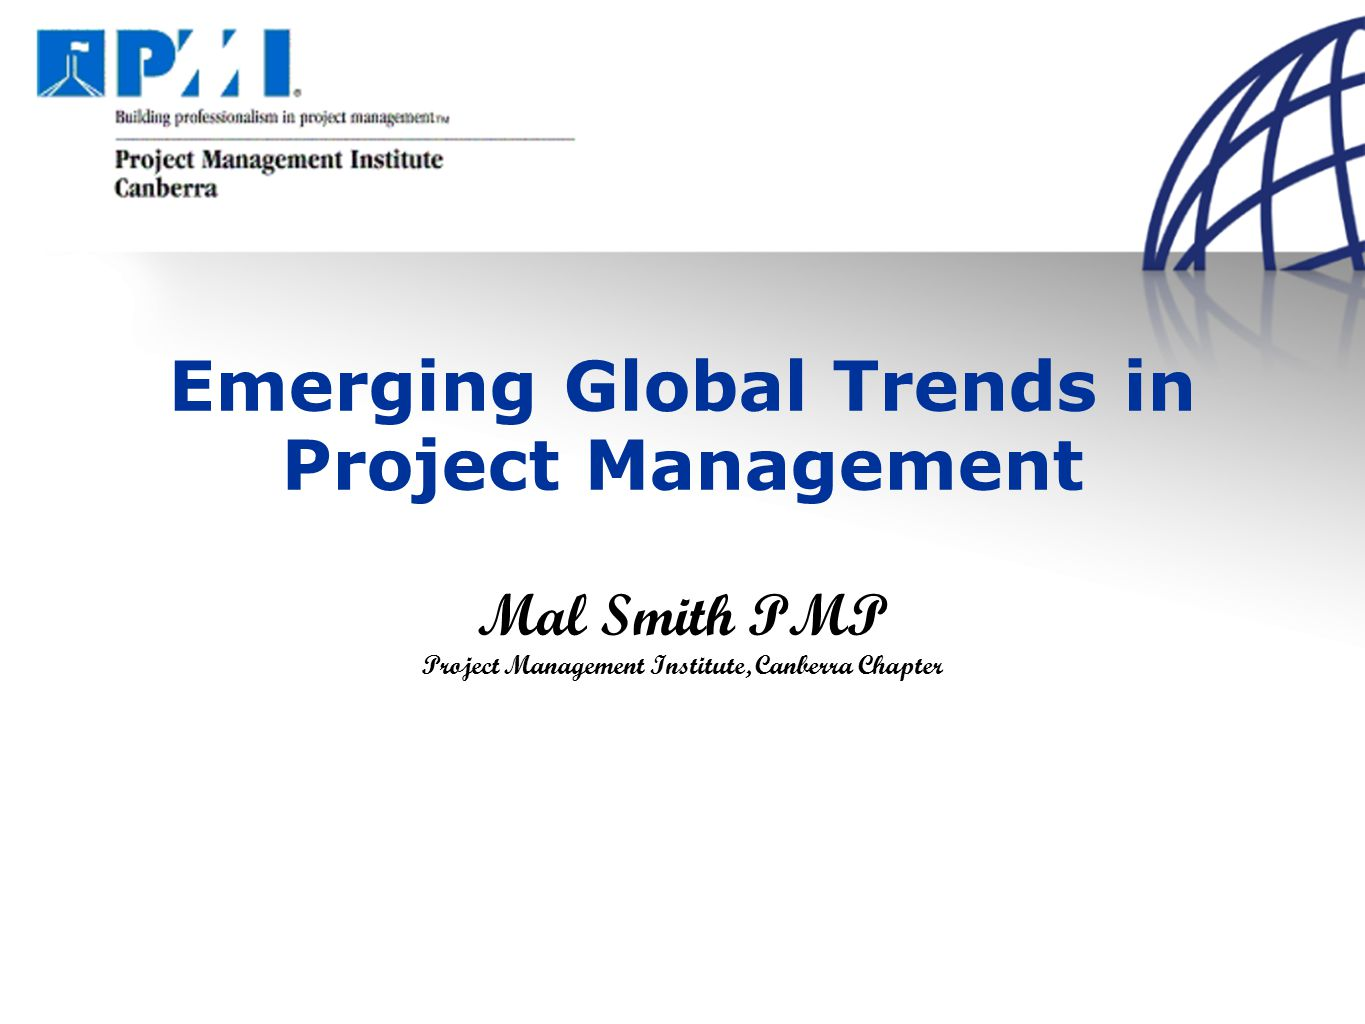 Emerging global trends in project management mal smith pmp project 1 emerging global trends in project management mal smith pmp project management institute canberra chapter xflitez Image collections